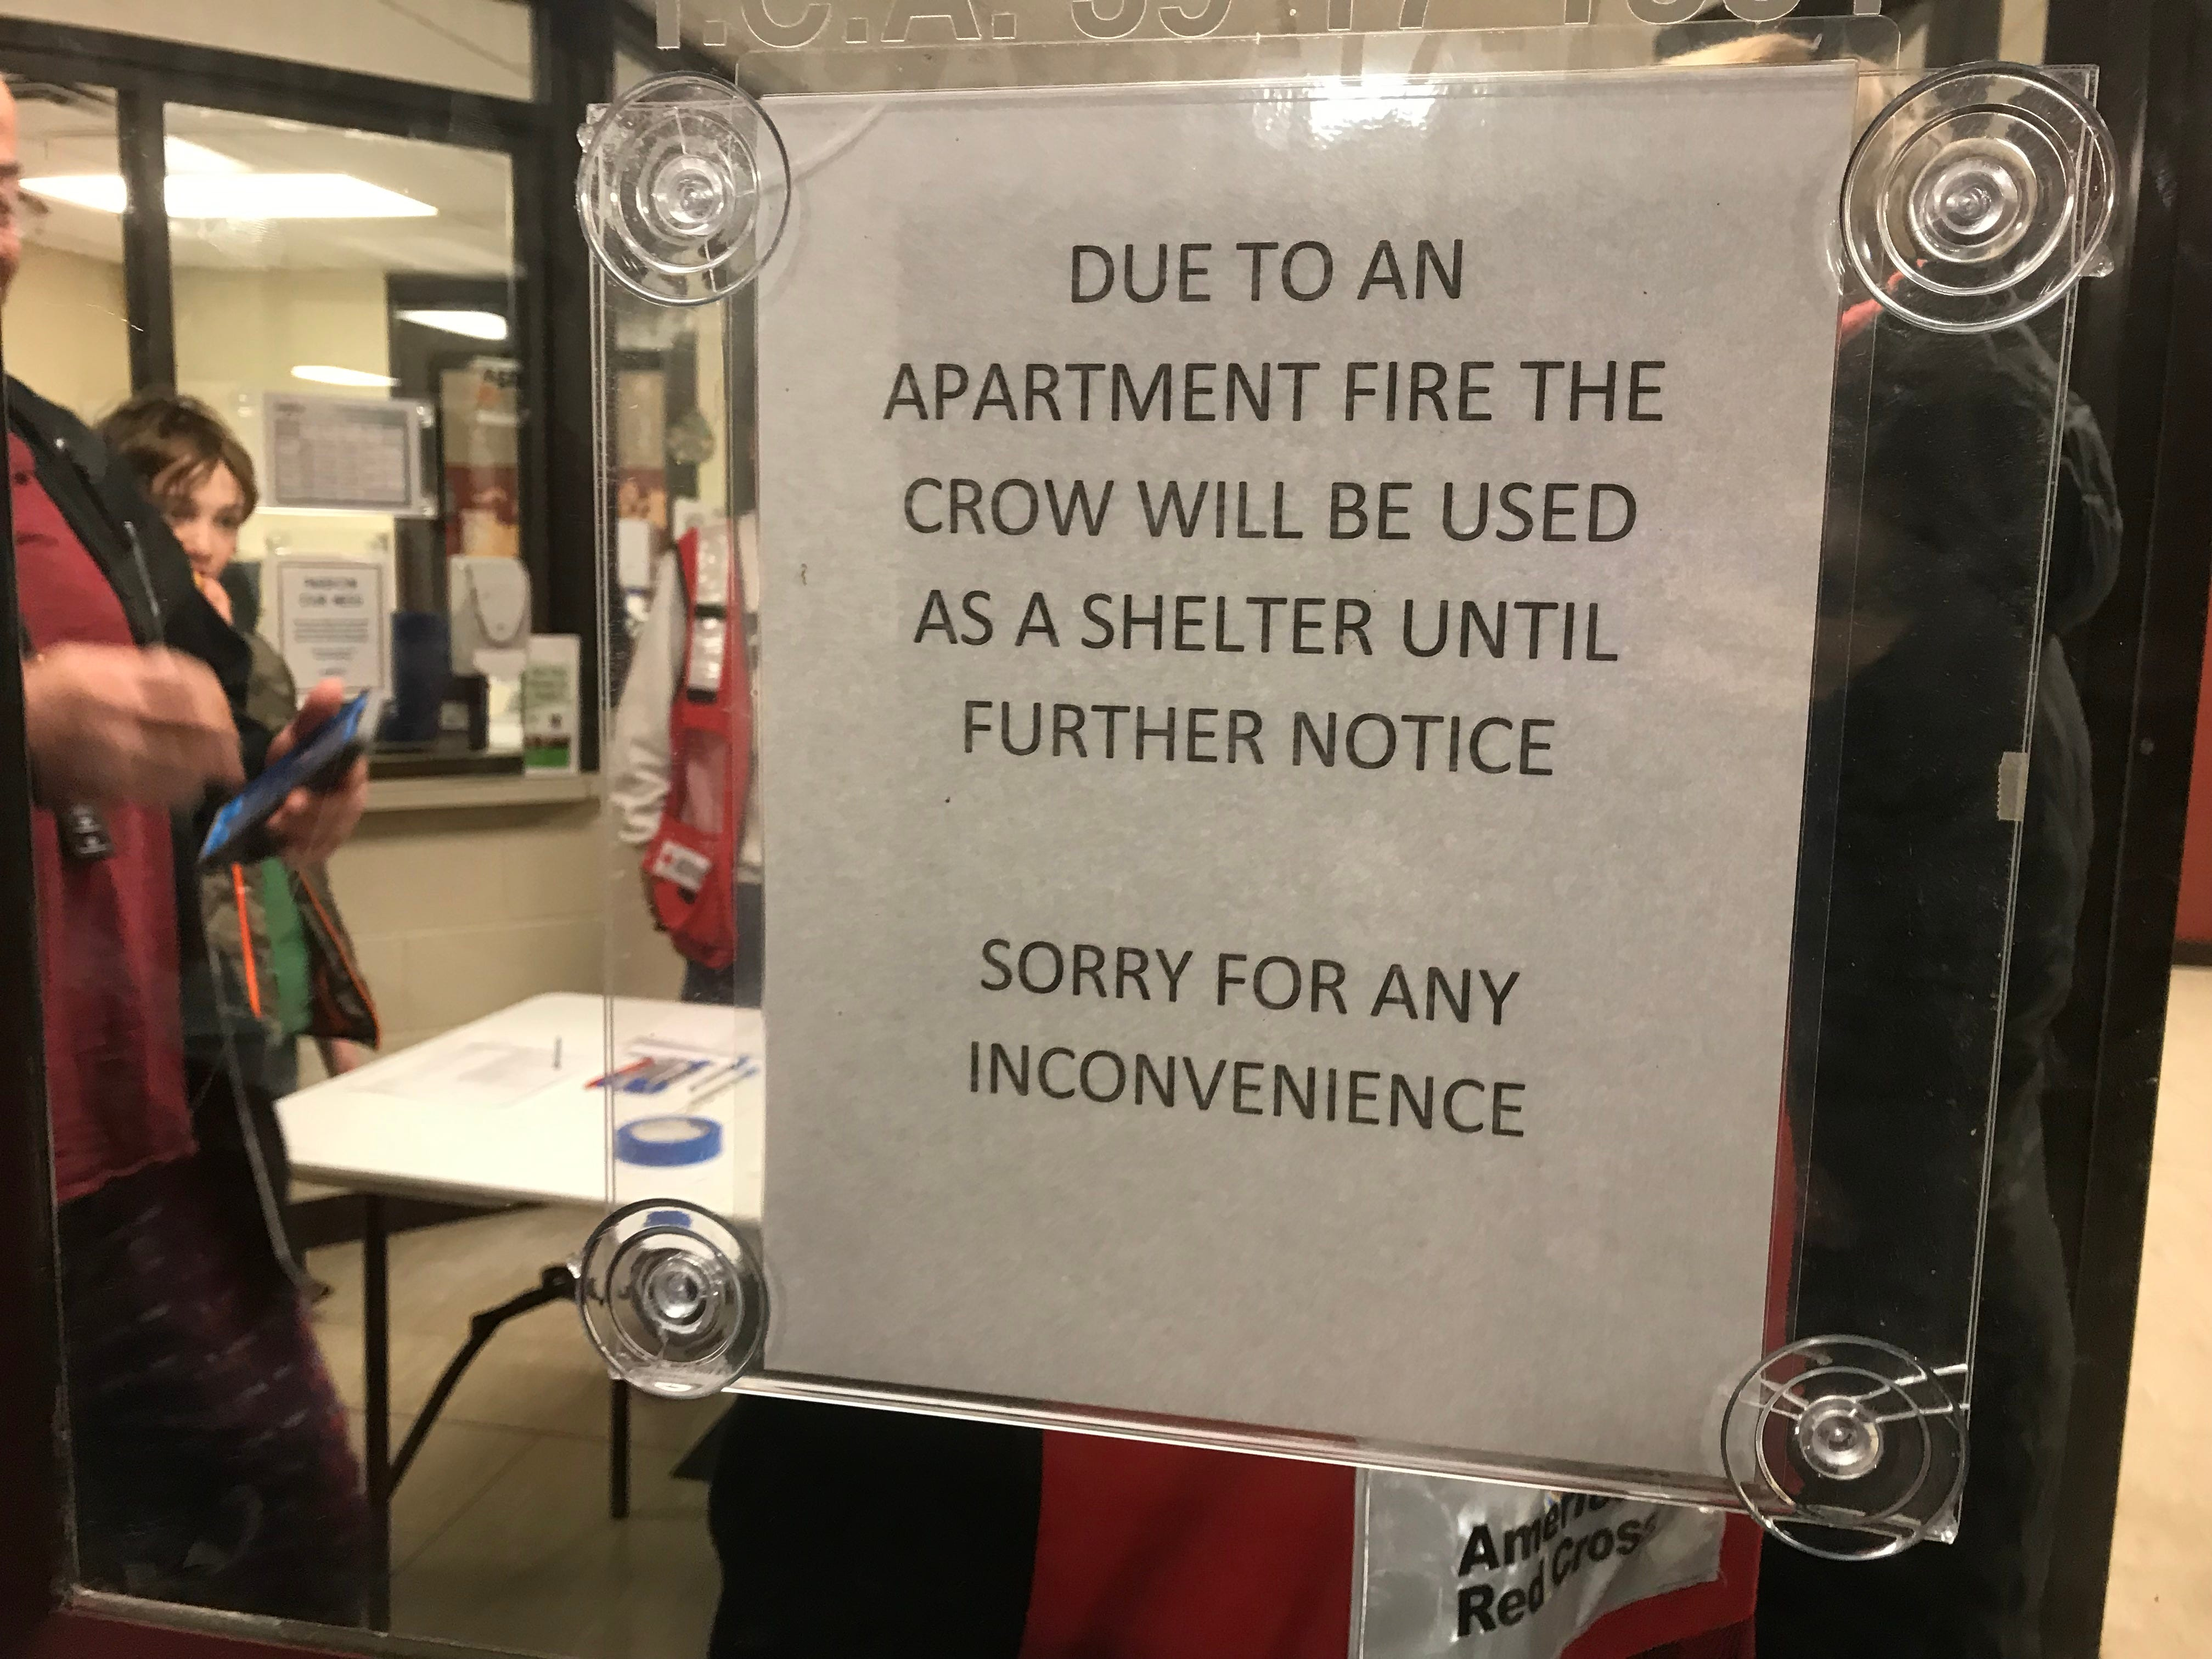 The Crow Community Center was set up as an emergency shelter on Tuesday, Jan. 29, 2019, in Clarksville to accommodate anyone displaced by a fire that heavily damaged 10 units at Ashford Place Apartments and caused smoke damage to 10 others.